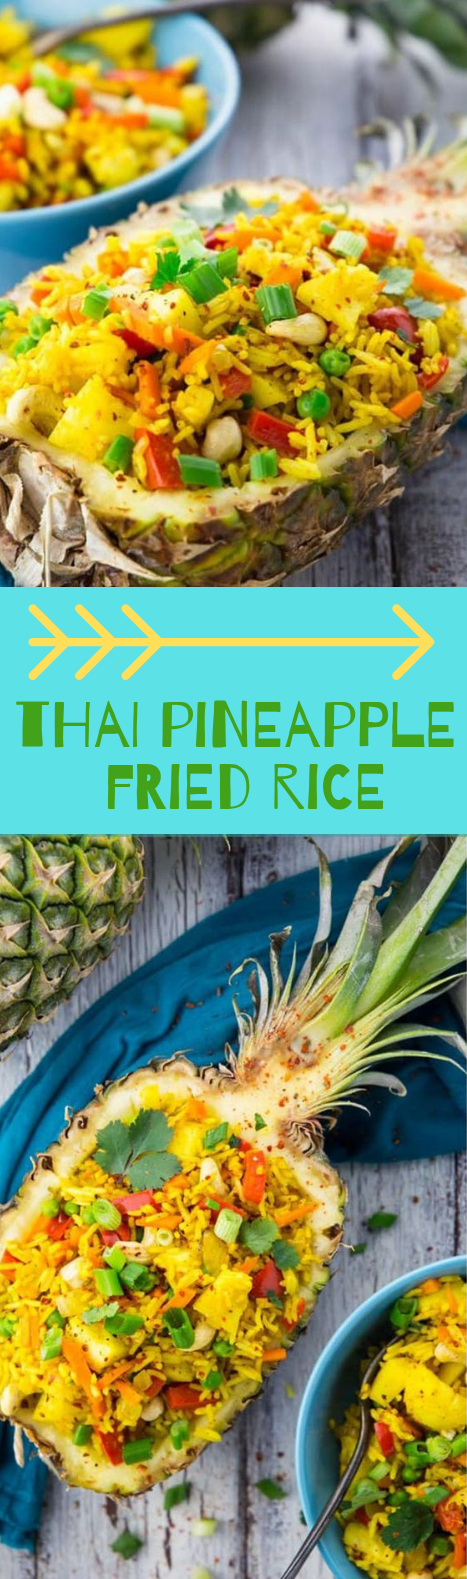 THAI PINEAPPLE FRIED RICE RECIPE (VEGAN) #vegetarian #pineapple